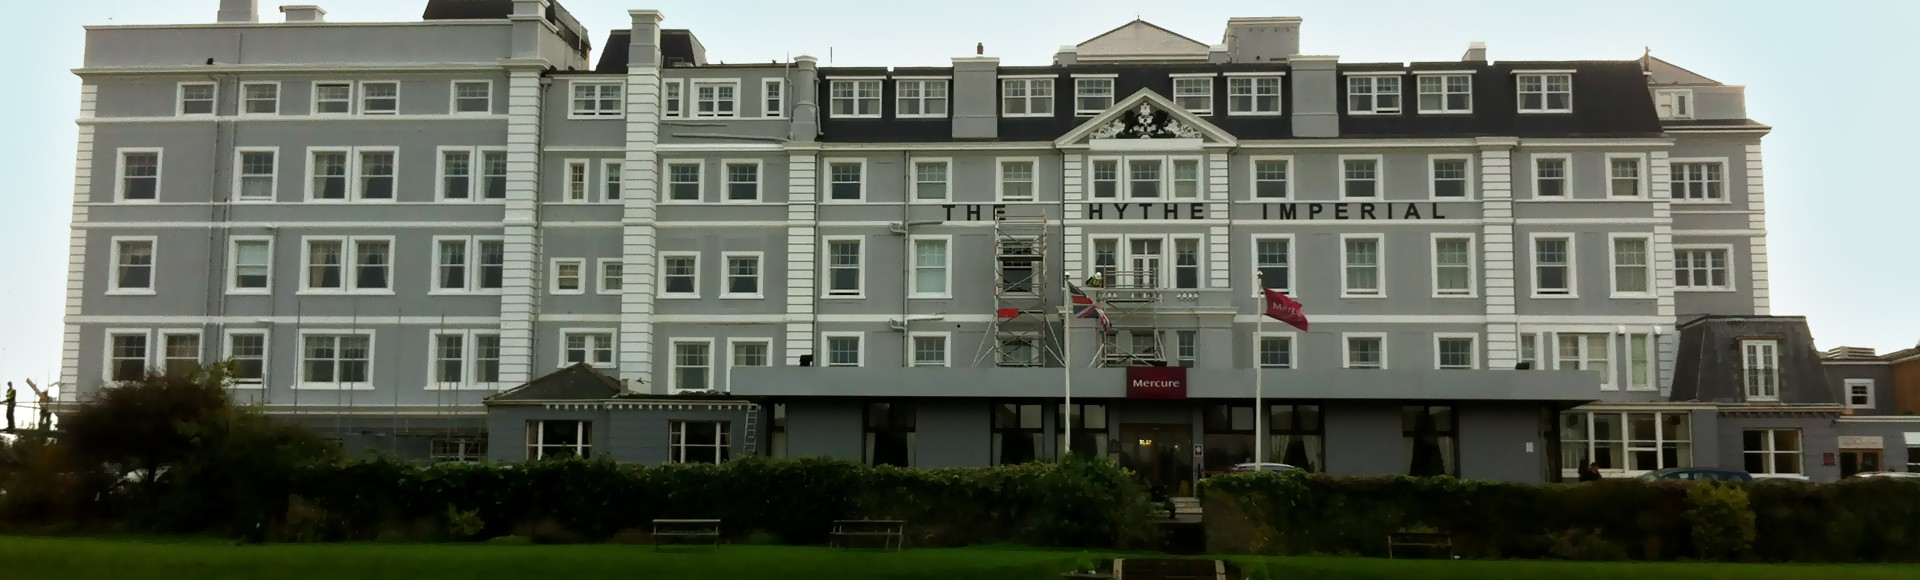 Painting and Decorating Services - Hythe Imperial Hotel